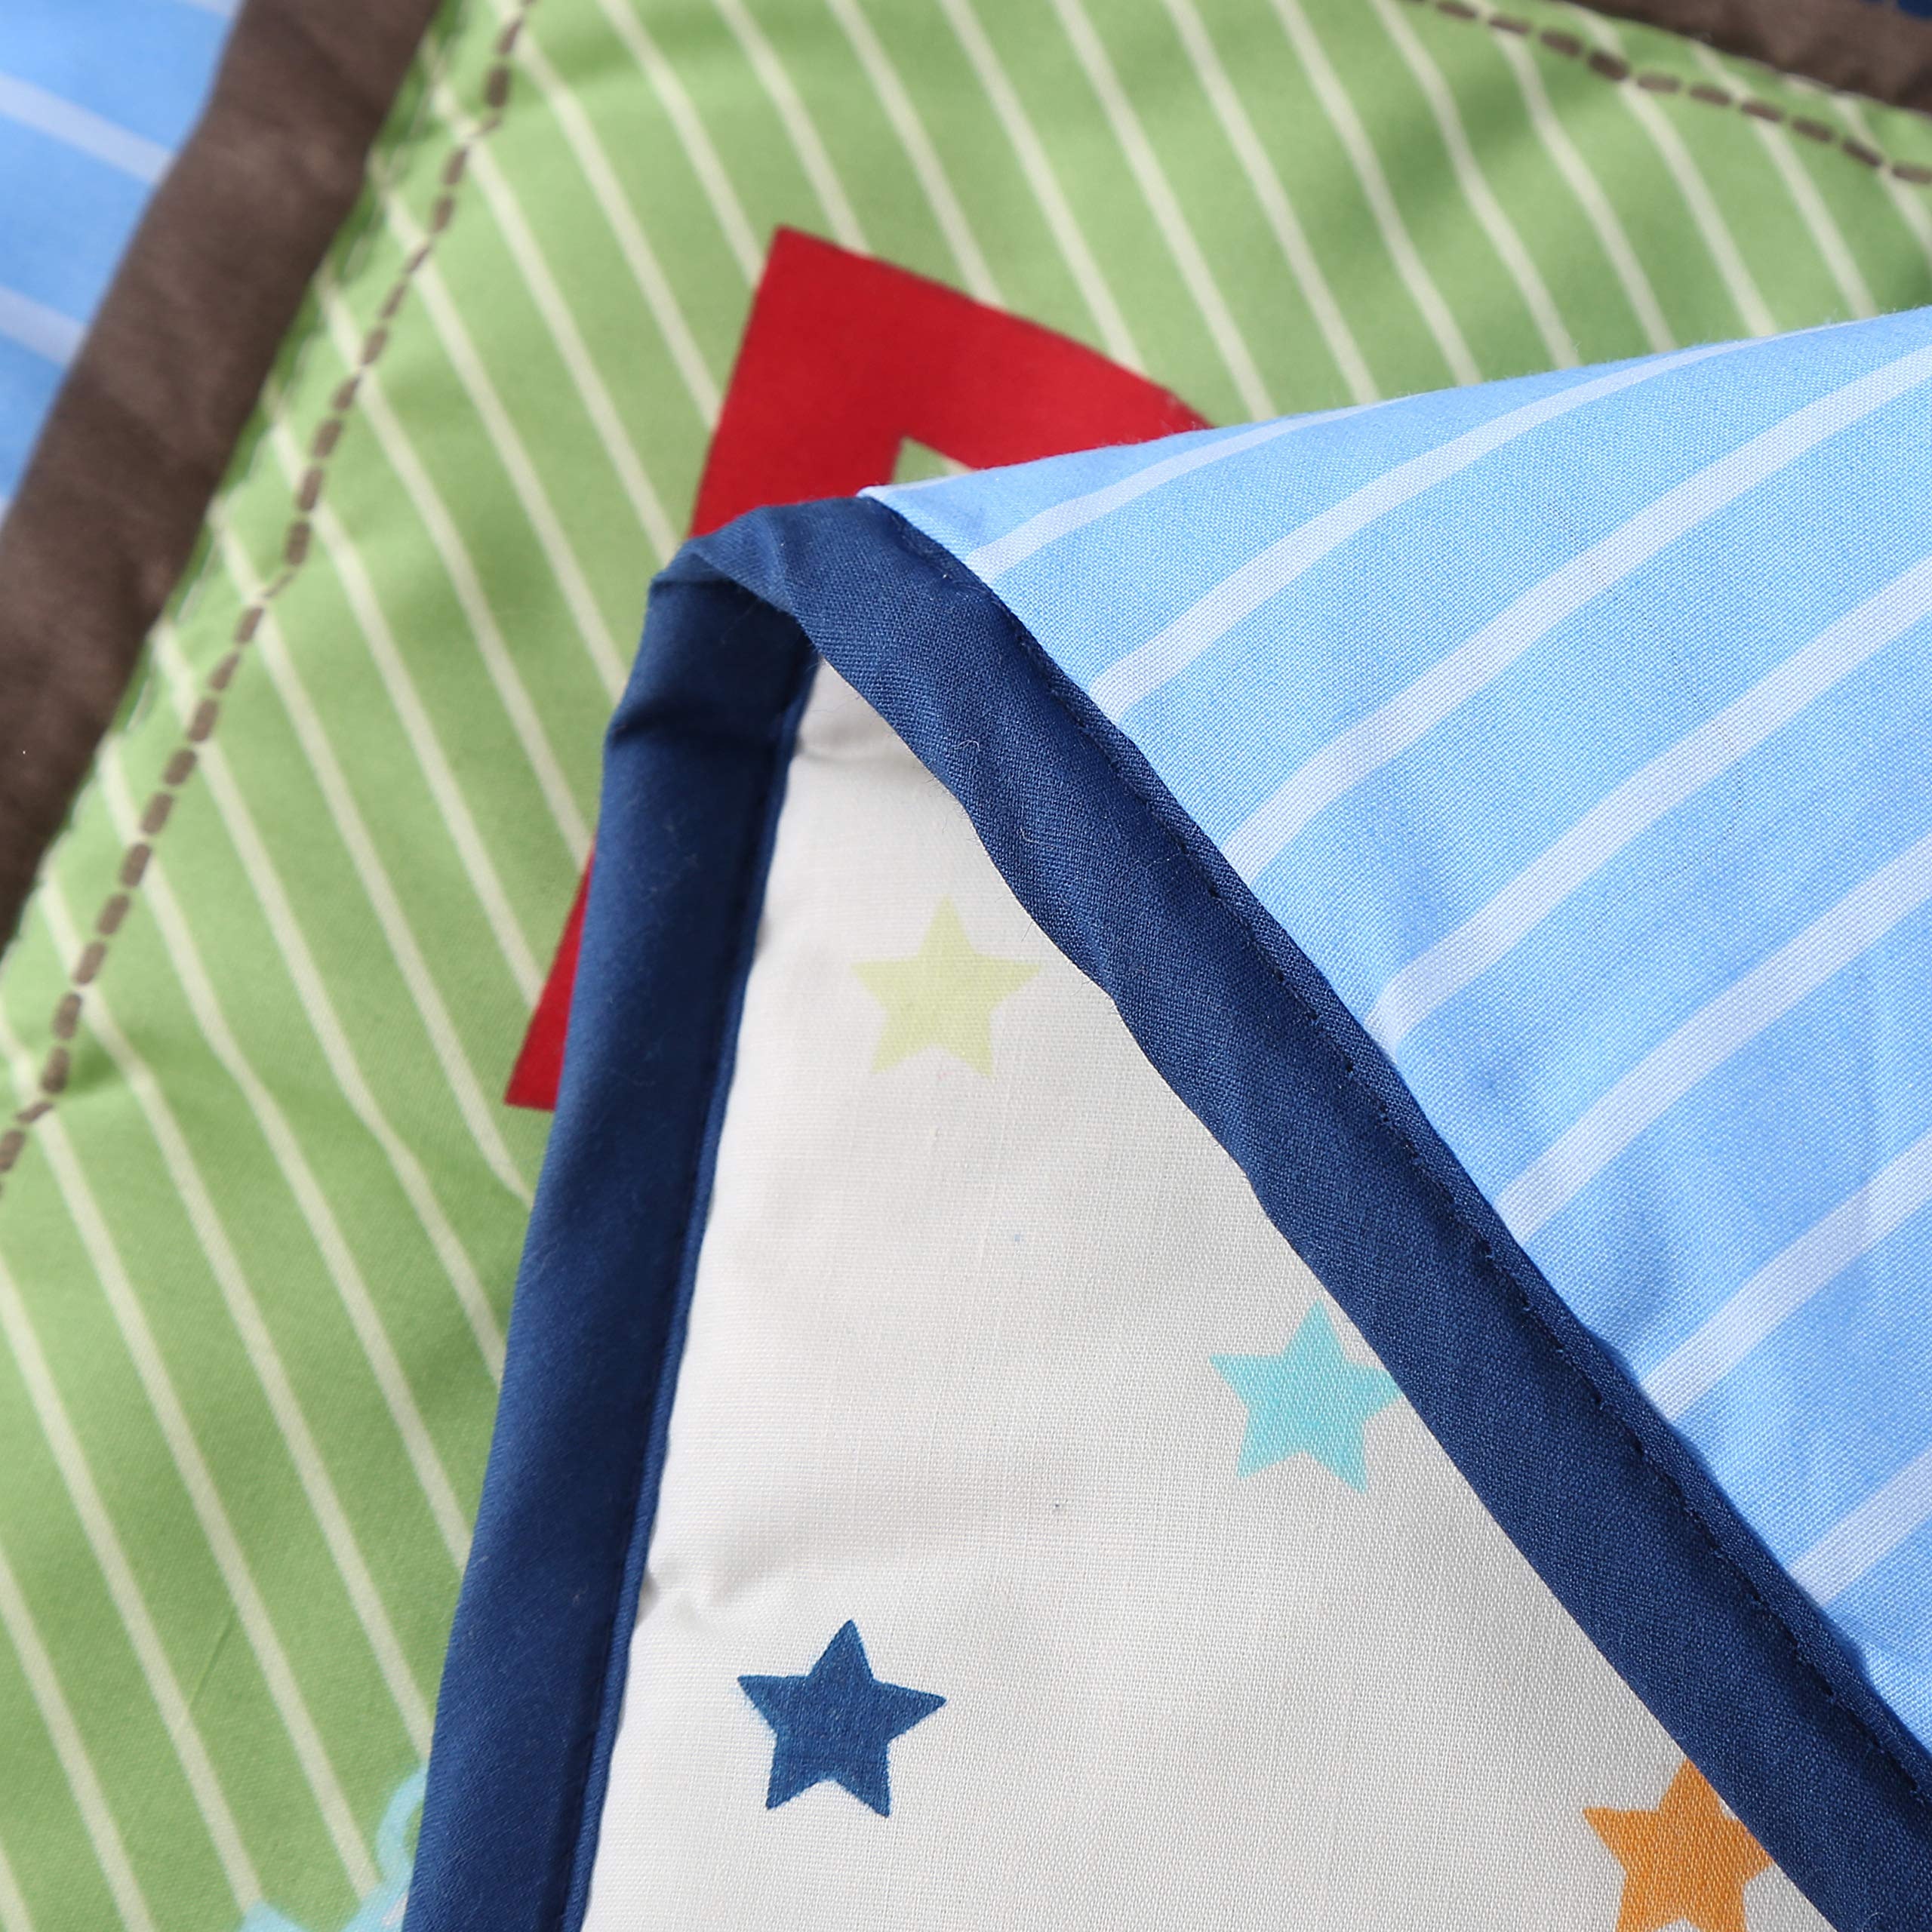 Wowelife Blue Crib Bedding Sets for Boys 7 Piece Travel Car and Airplane for Baby(Little Pilot) by Wowelife (Image #9)